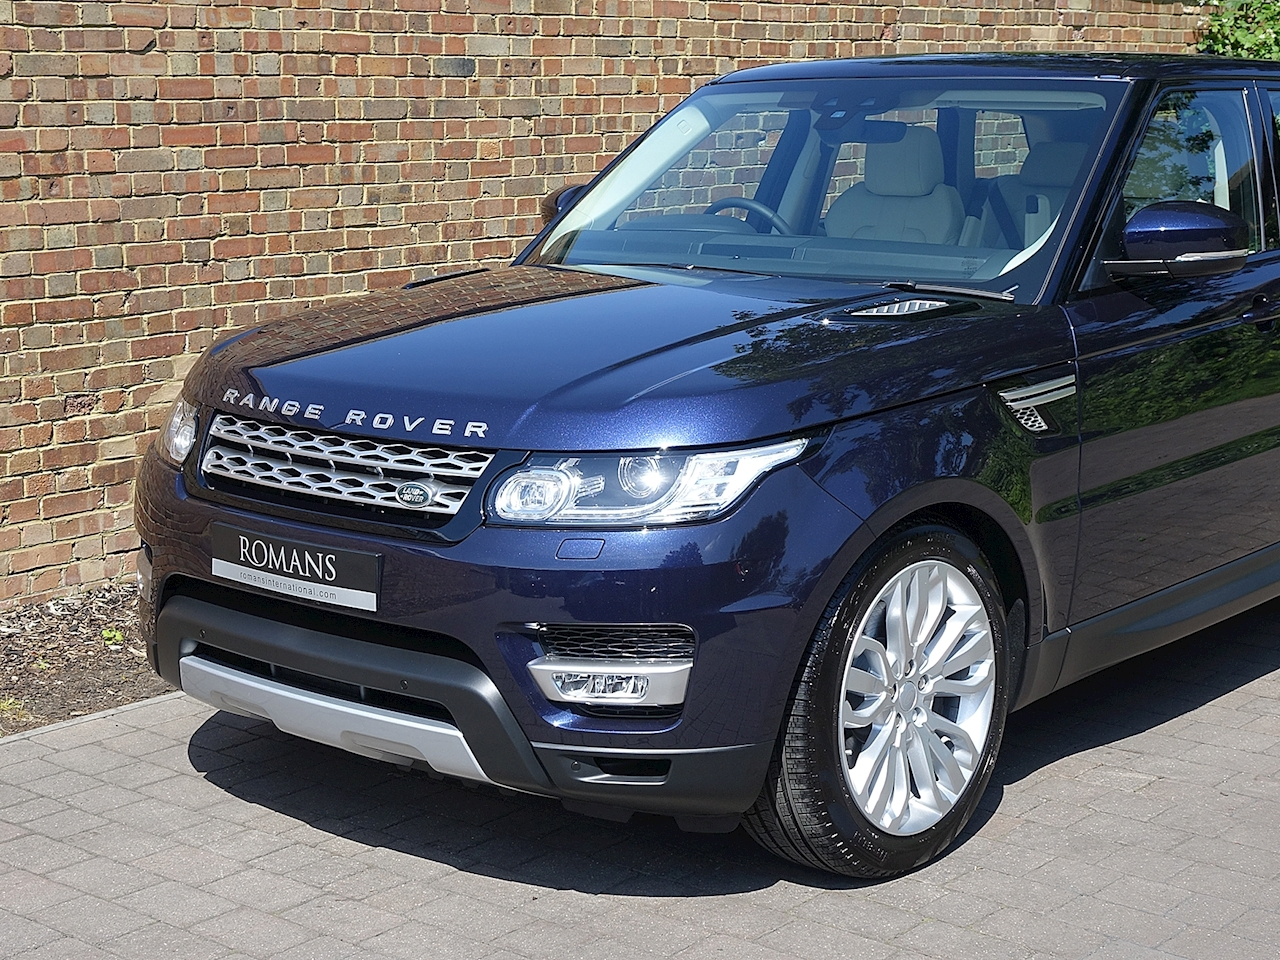 2017 Used Land Rover Range Rover Sport Sdv6 Hse Loire Blue